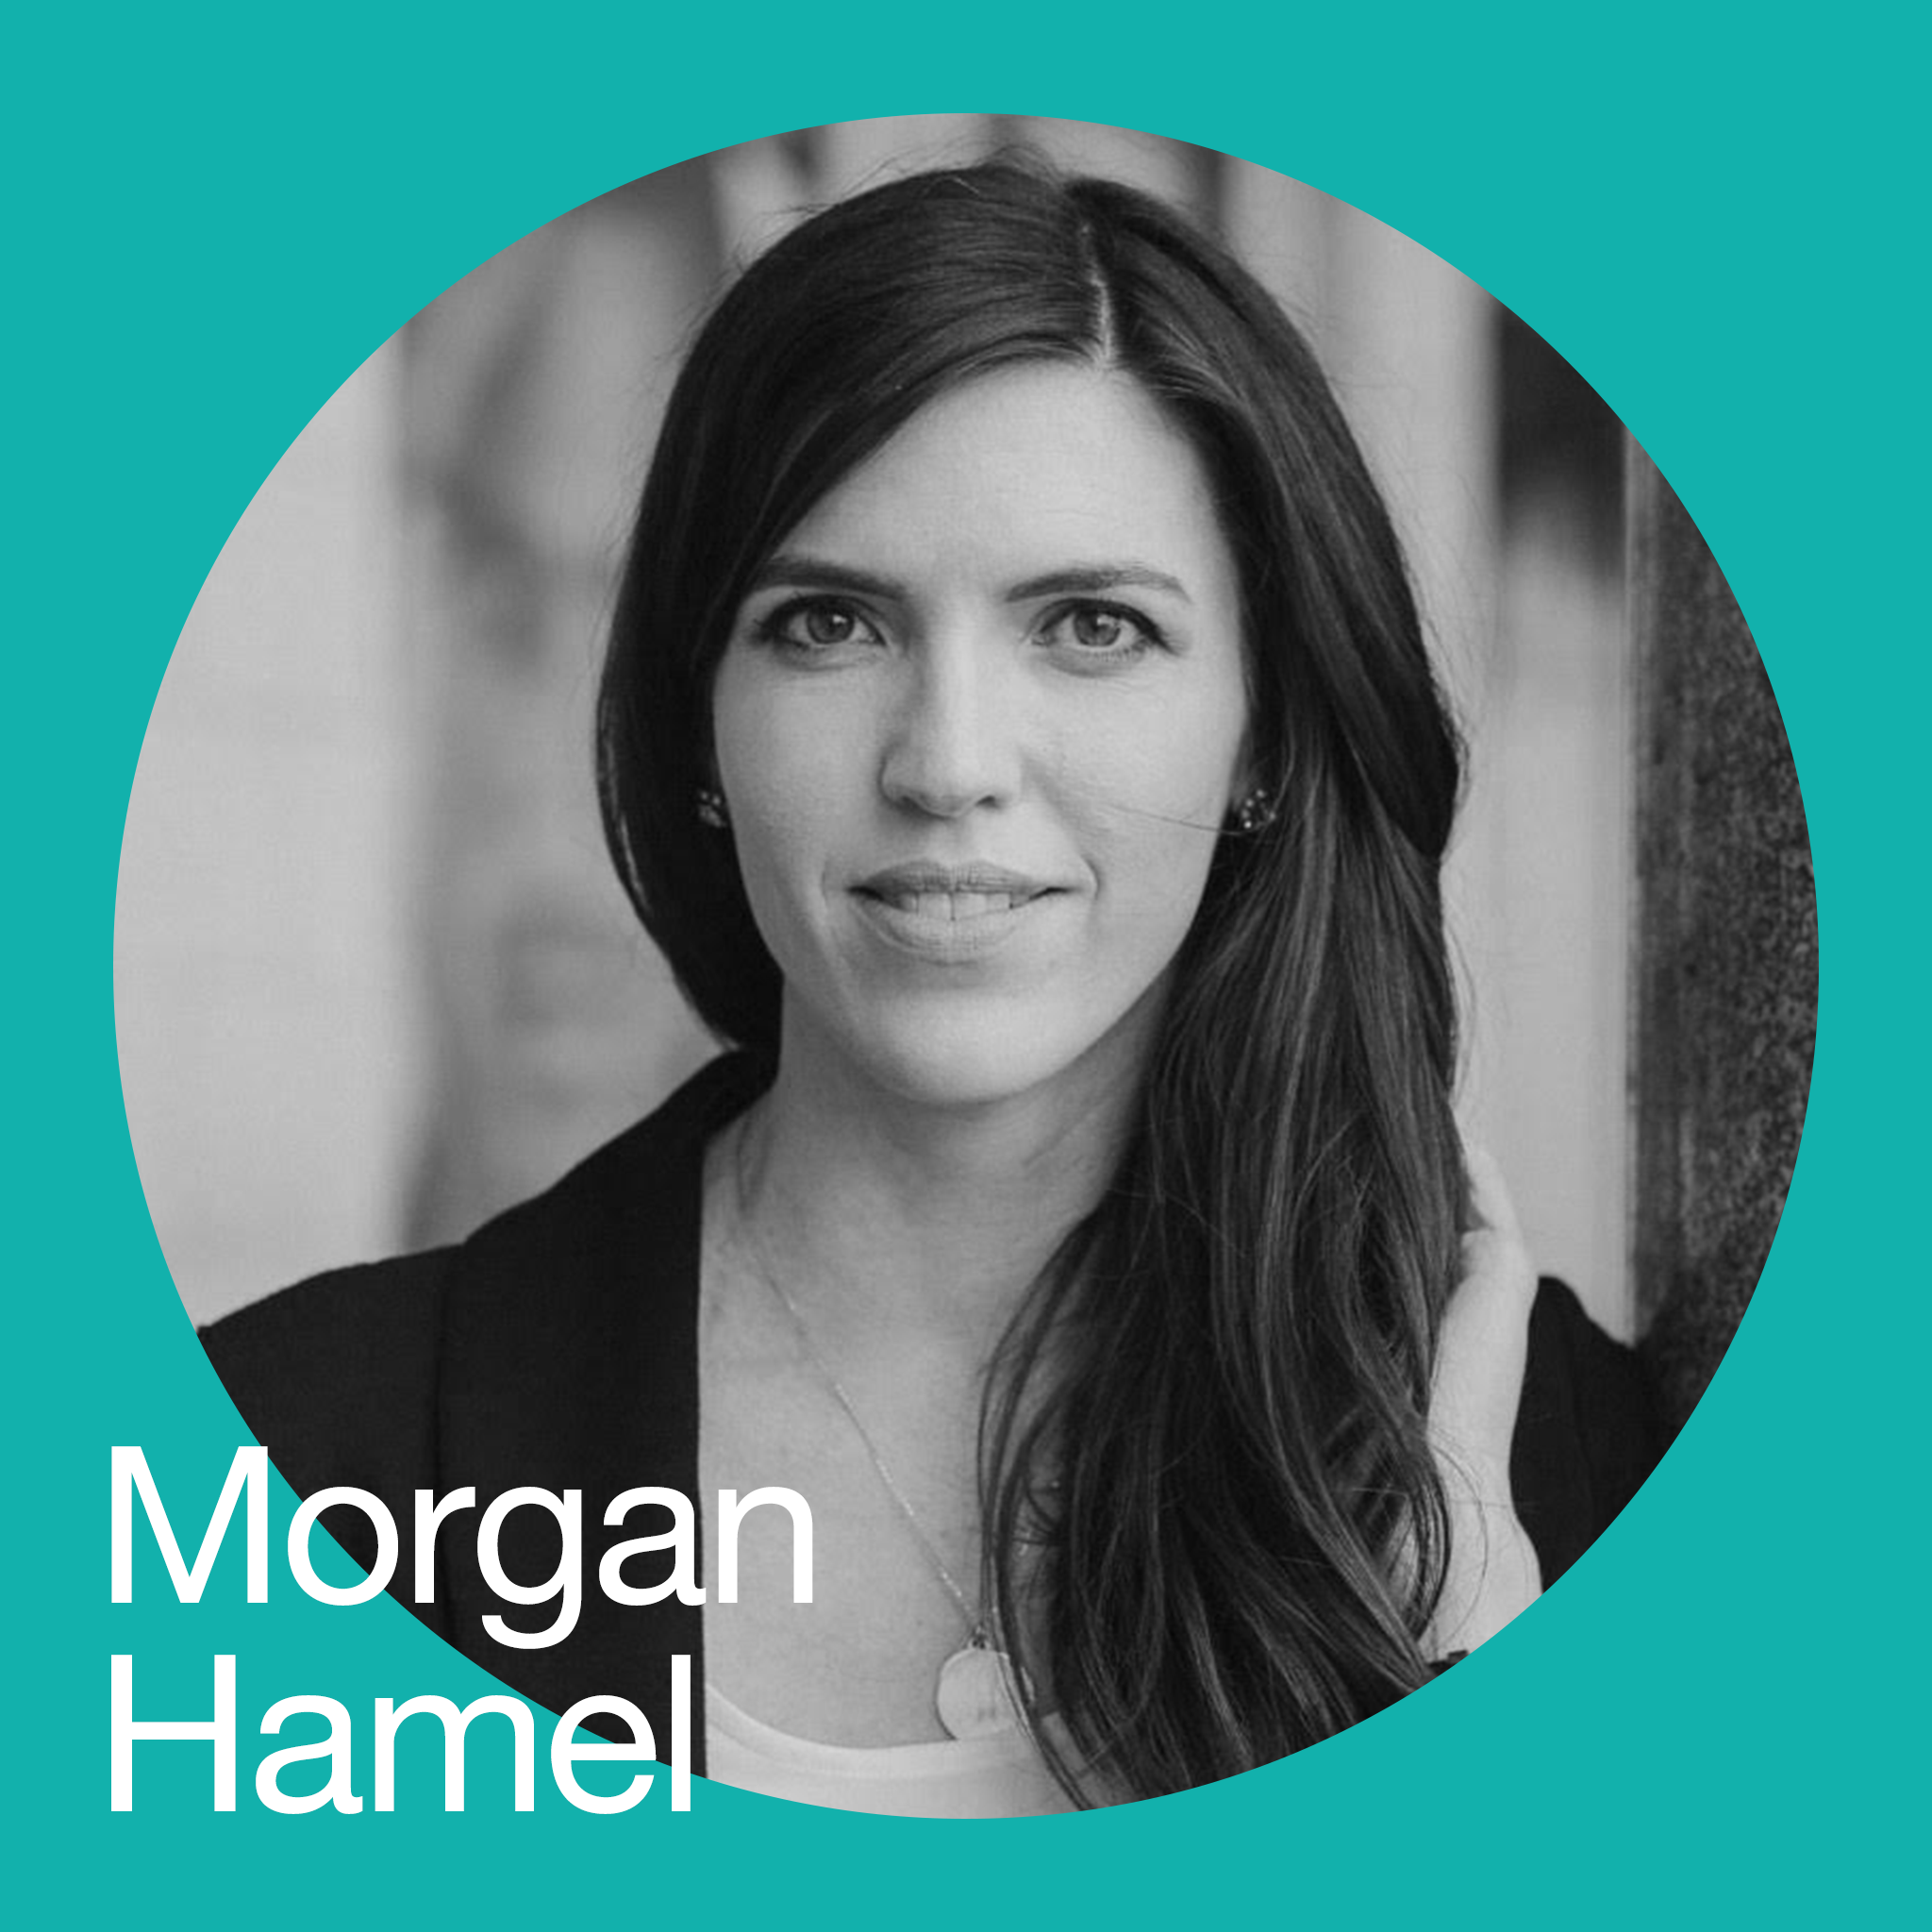 Morgan Hamel | Becoming As Ethical As We Think We Are